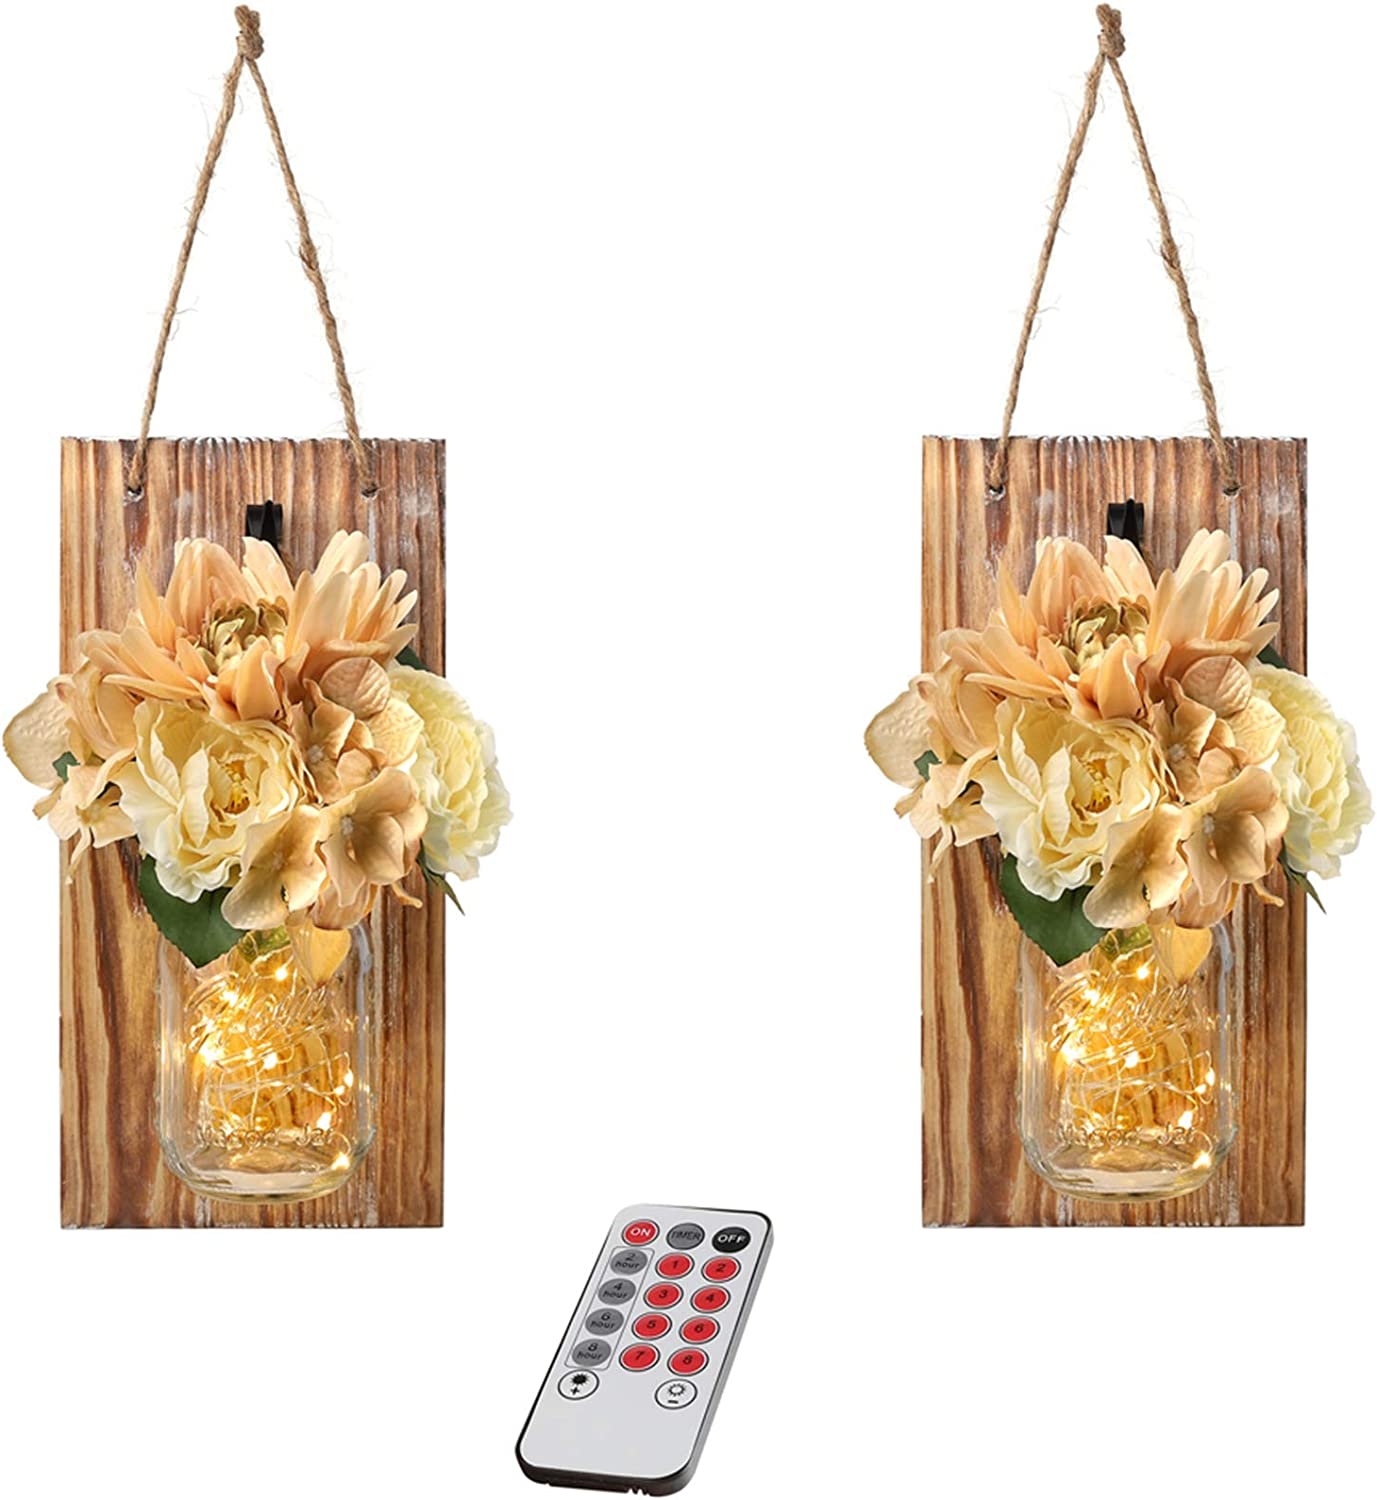 GBtroo Remote Mason Jar Decor Wall Hanging - Country Farmhouse Vintage Wall Art Decor with Wireless Remote, LED Fairy Lights 6-Hour Timer with Rose Flowers Home Decoration (Set of 2) Large,Brown